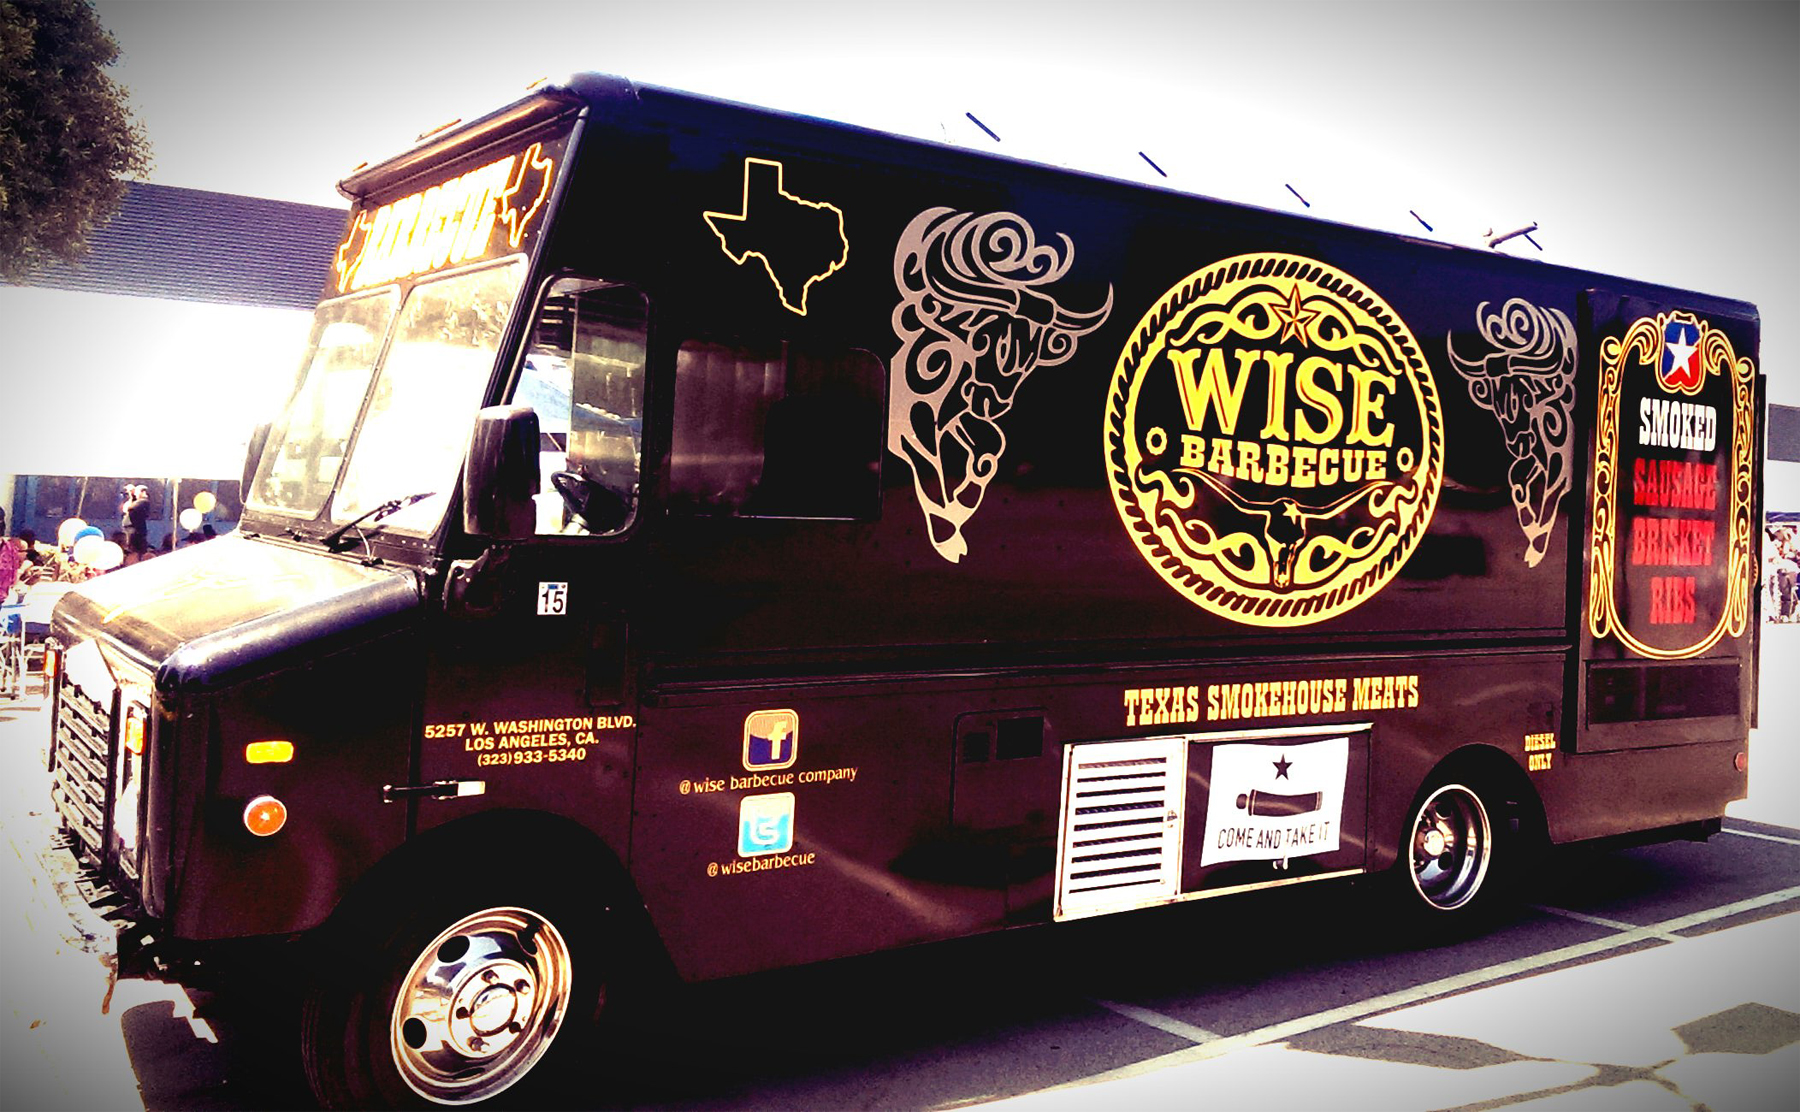 WORLD FAMOUS WISE BBQ FOOD TRUCK!